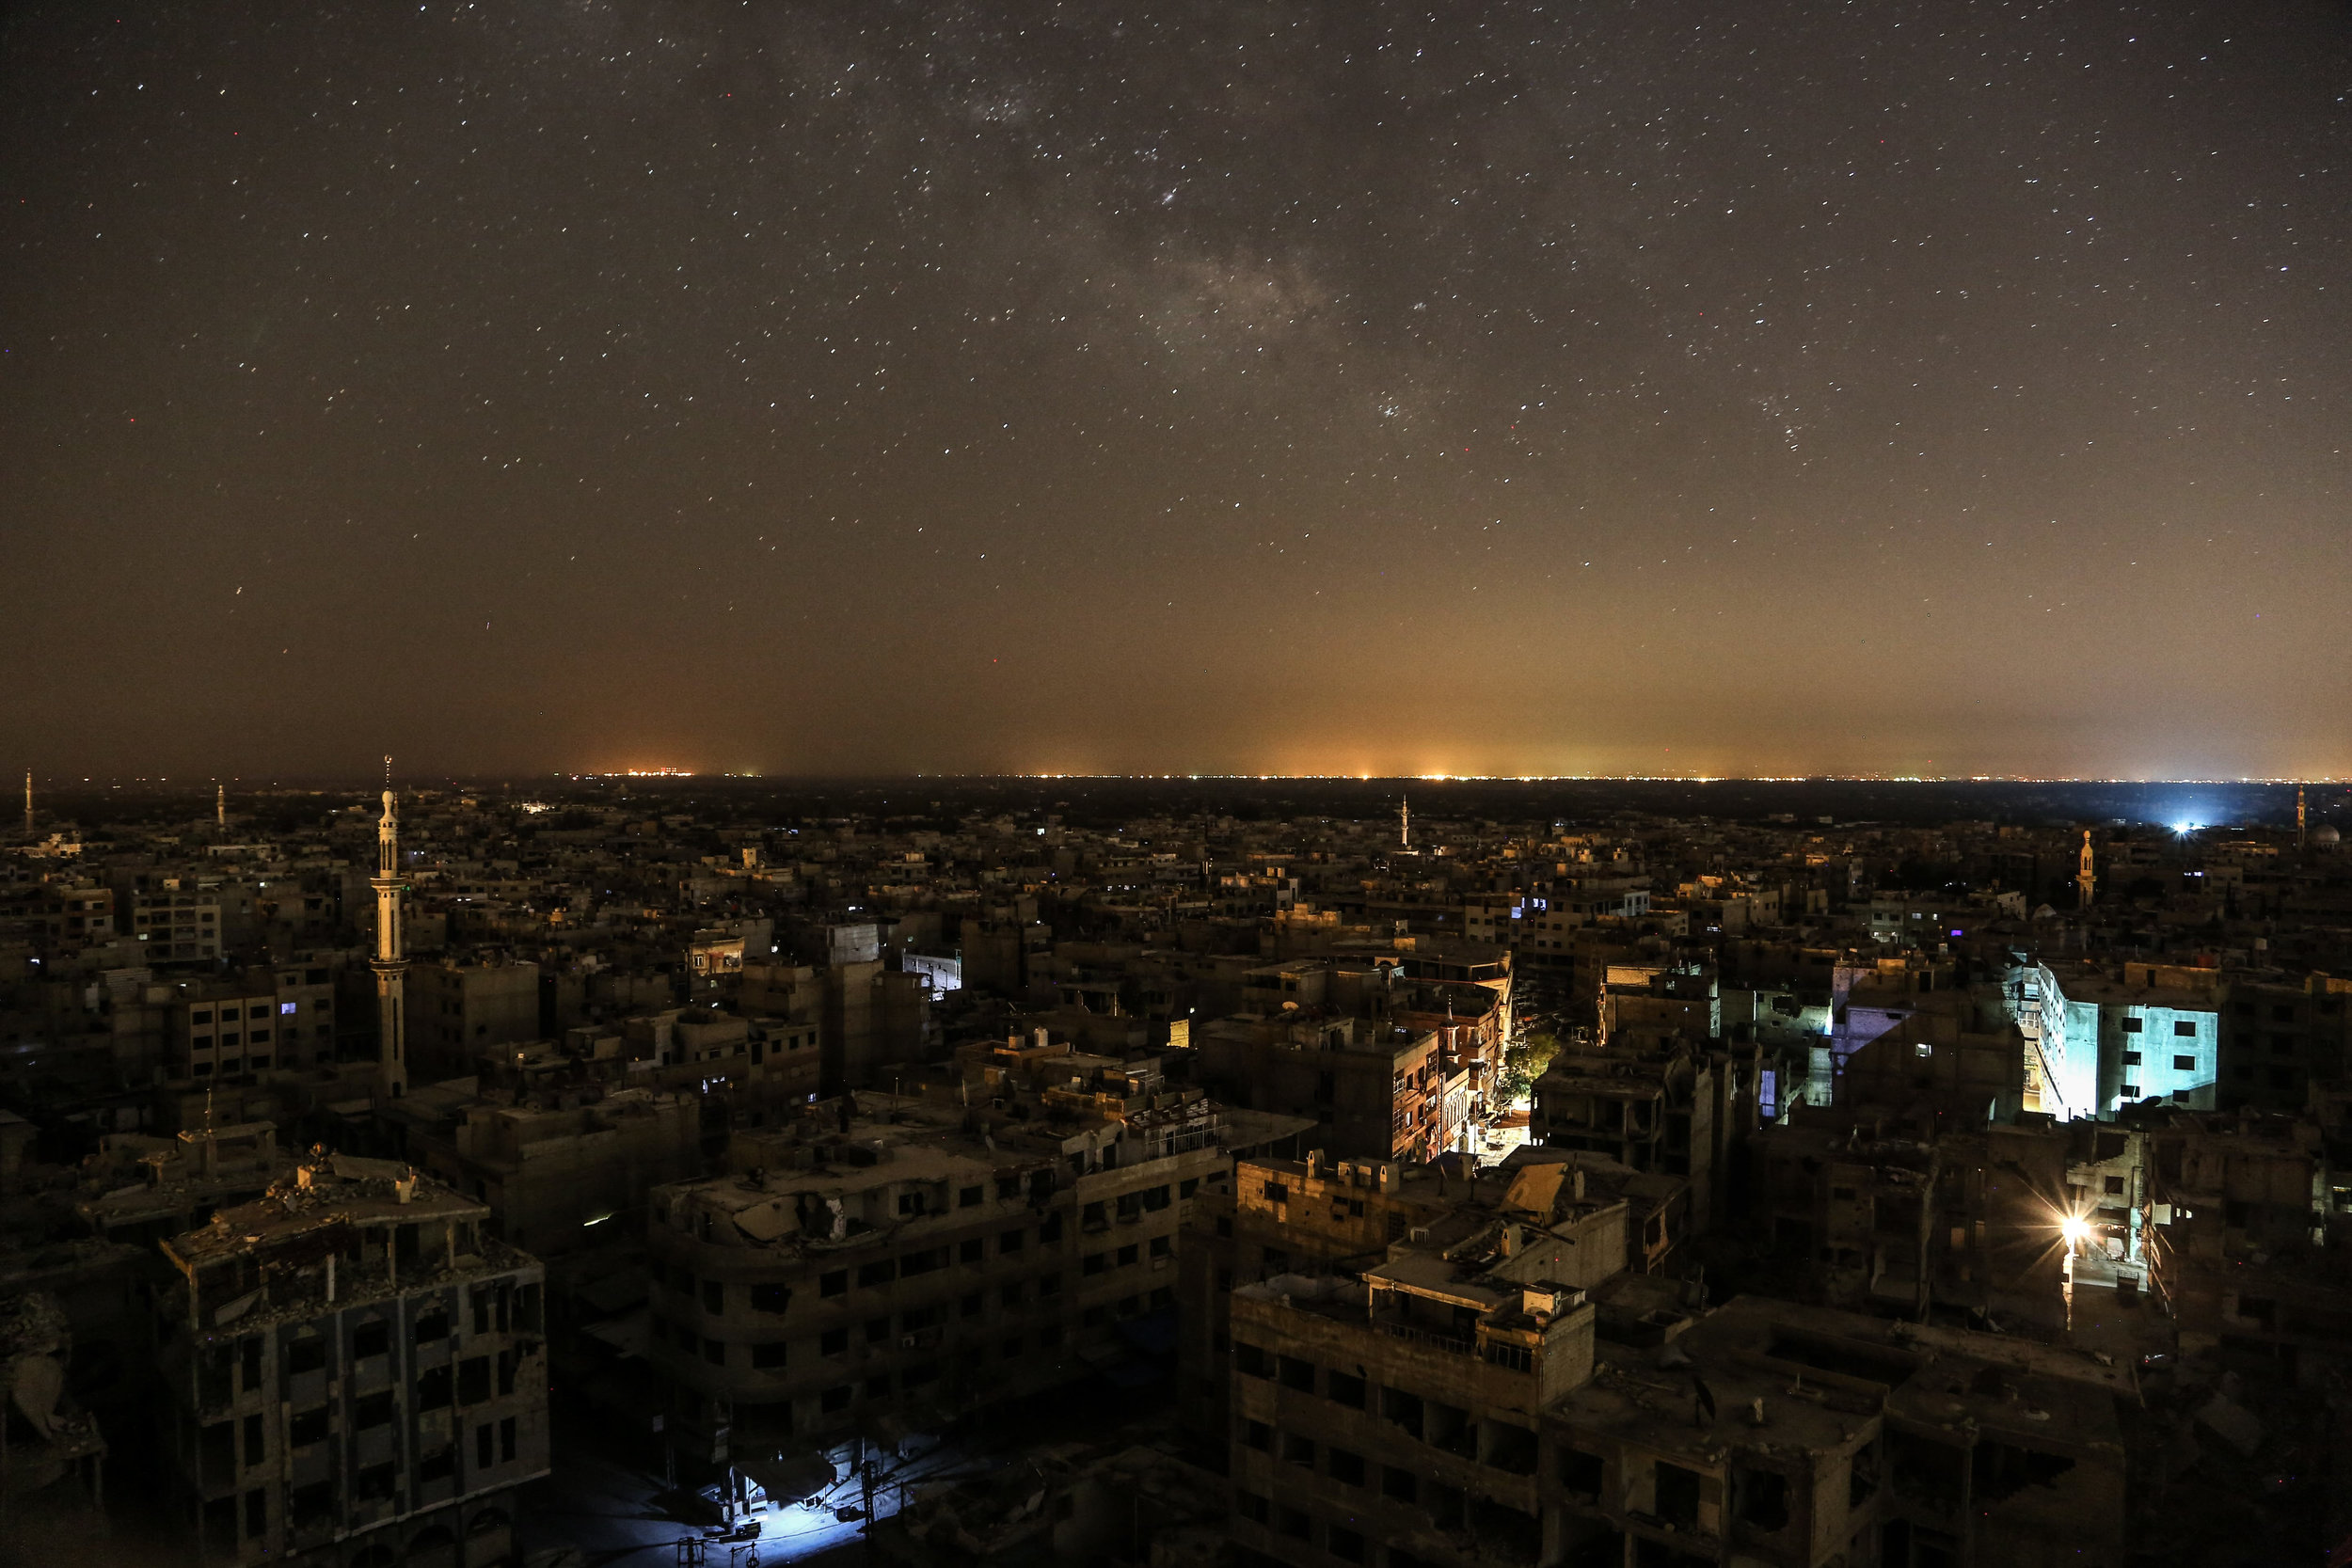 A general view shows the damaged buildings at night in the city of Douma, as the Syrian government deprived people there from the electricity for more than 5 years.